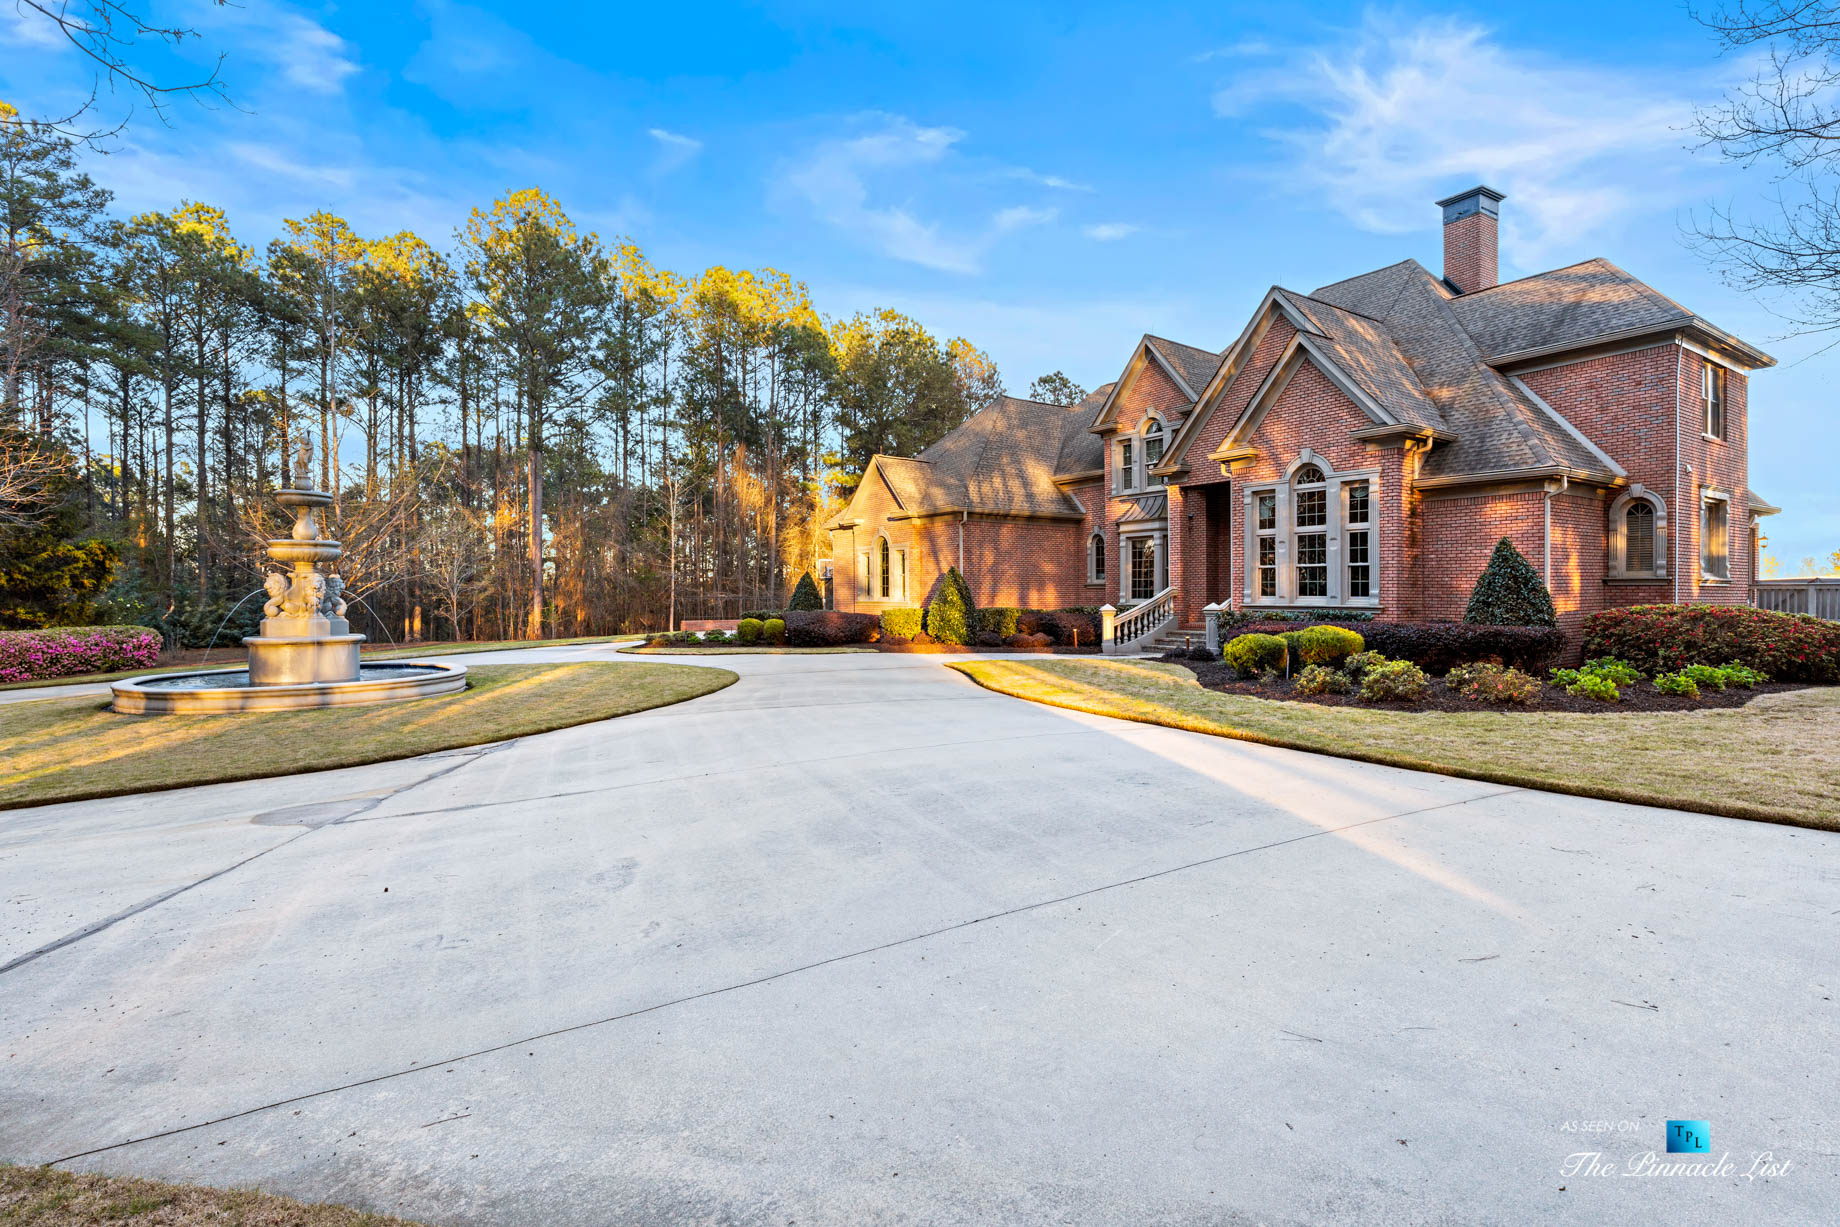 2219 Costley Mill Rd NE, Conyers, GA, USA – Front Property Water Fountain – Luxury Real Estate – Equestrian Country Home